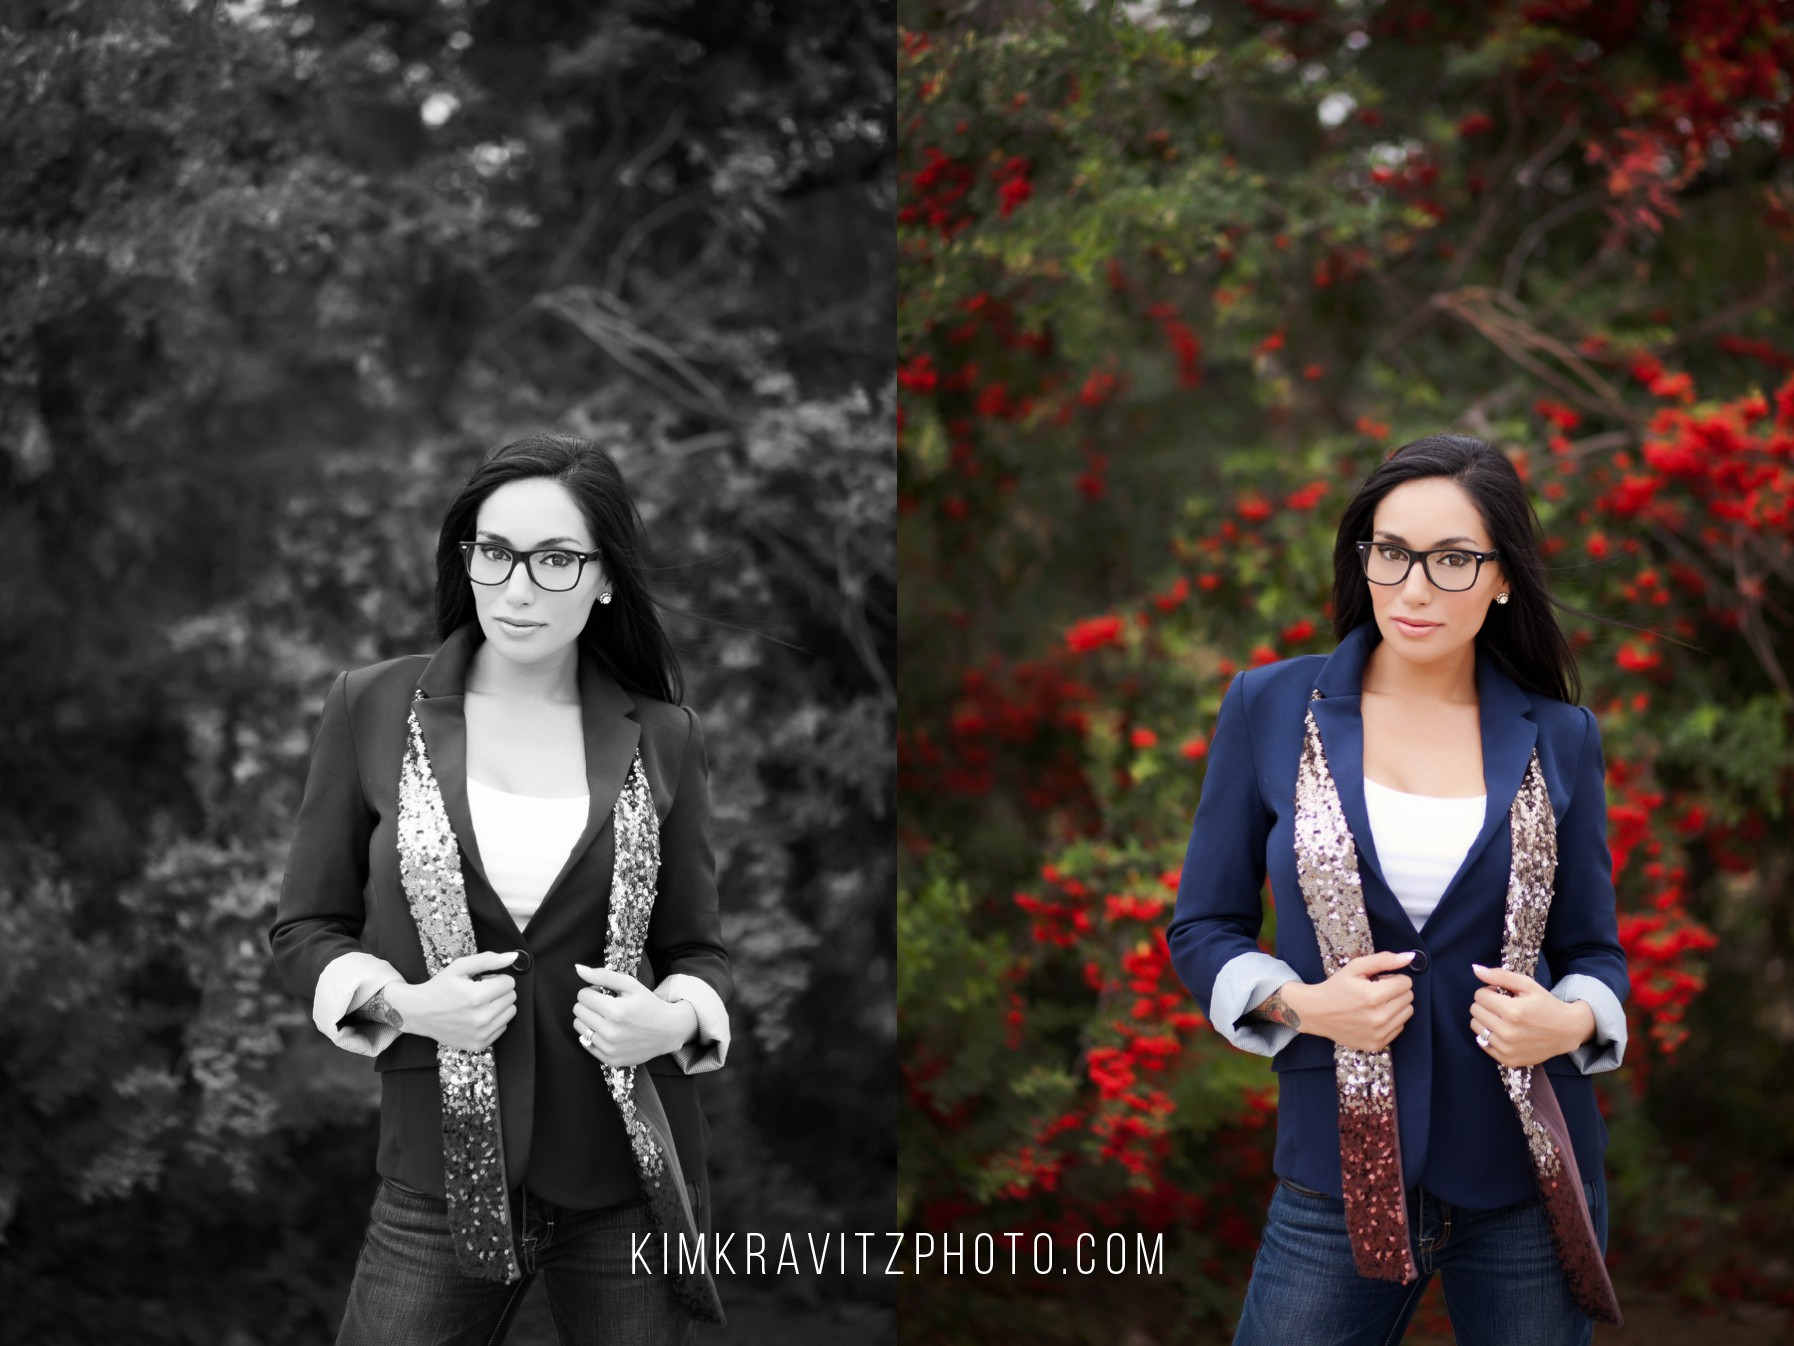 Southeast Kansas Photography Mentor Session with Natural Light by Kim Kravitz